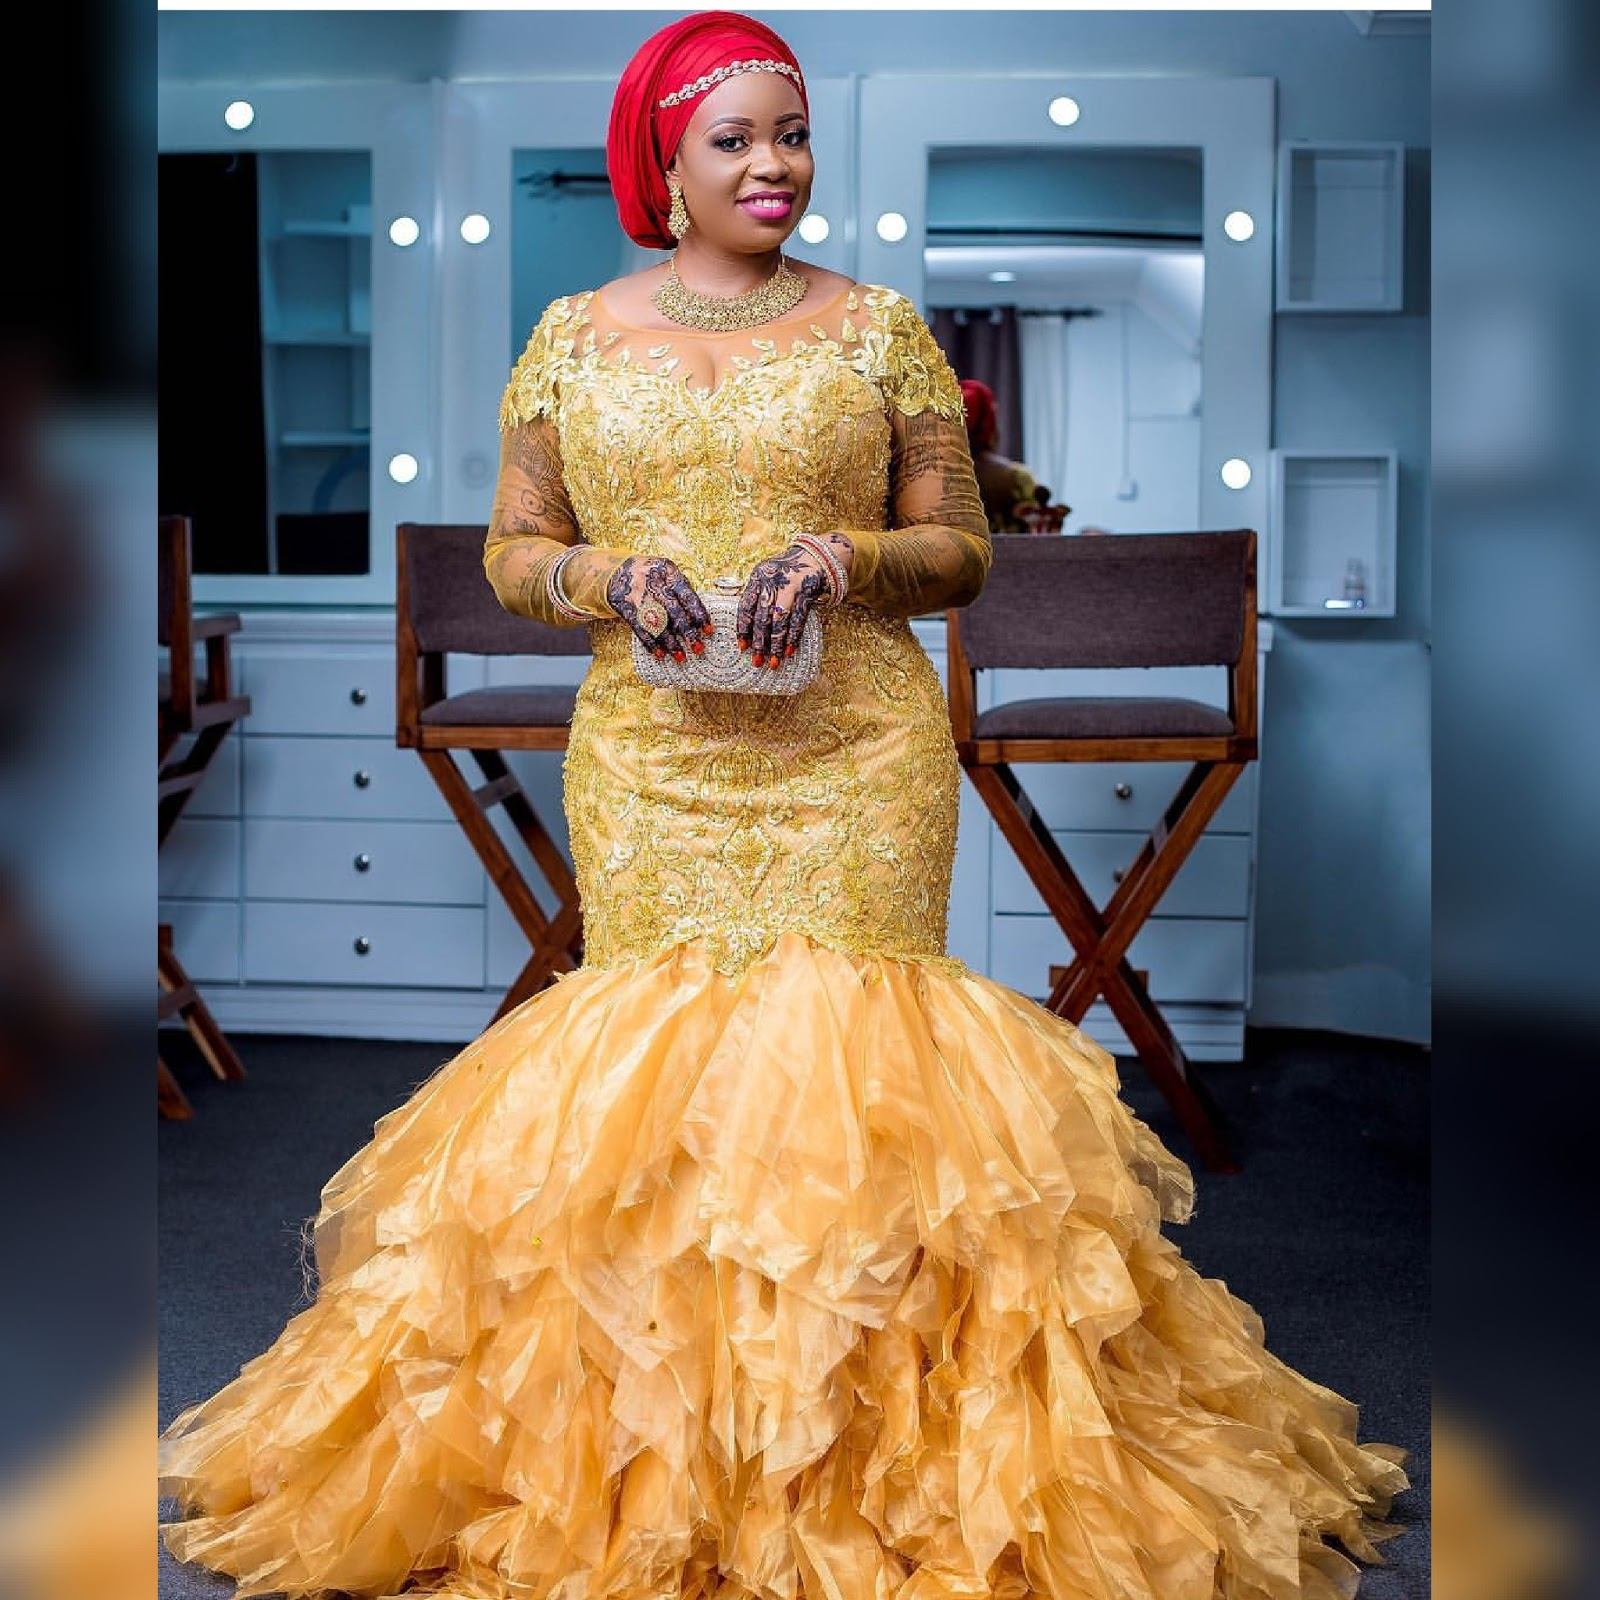 Celebrity Wedding Guest Outfits 2019: Send Off ,Kitchen Party,Second Dresses 2019